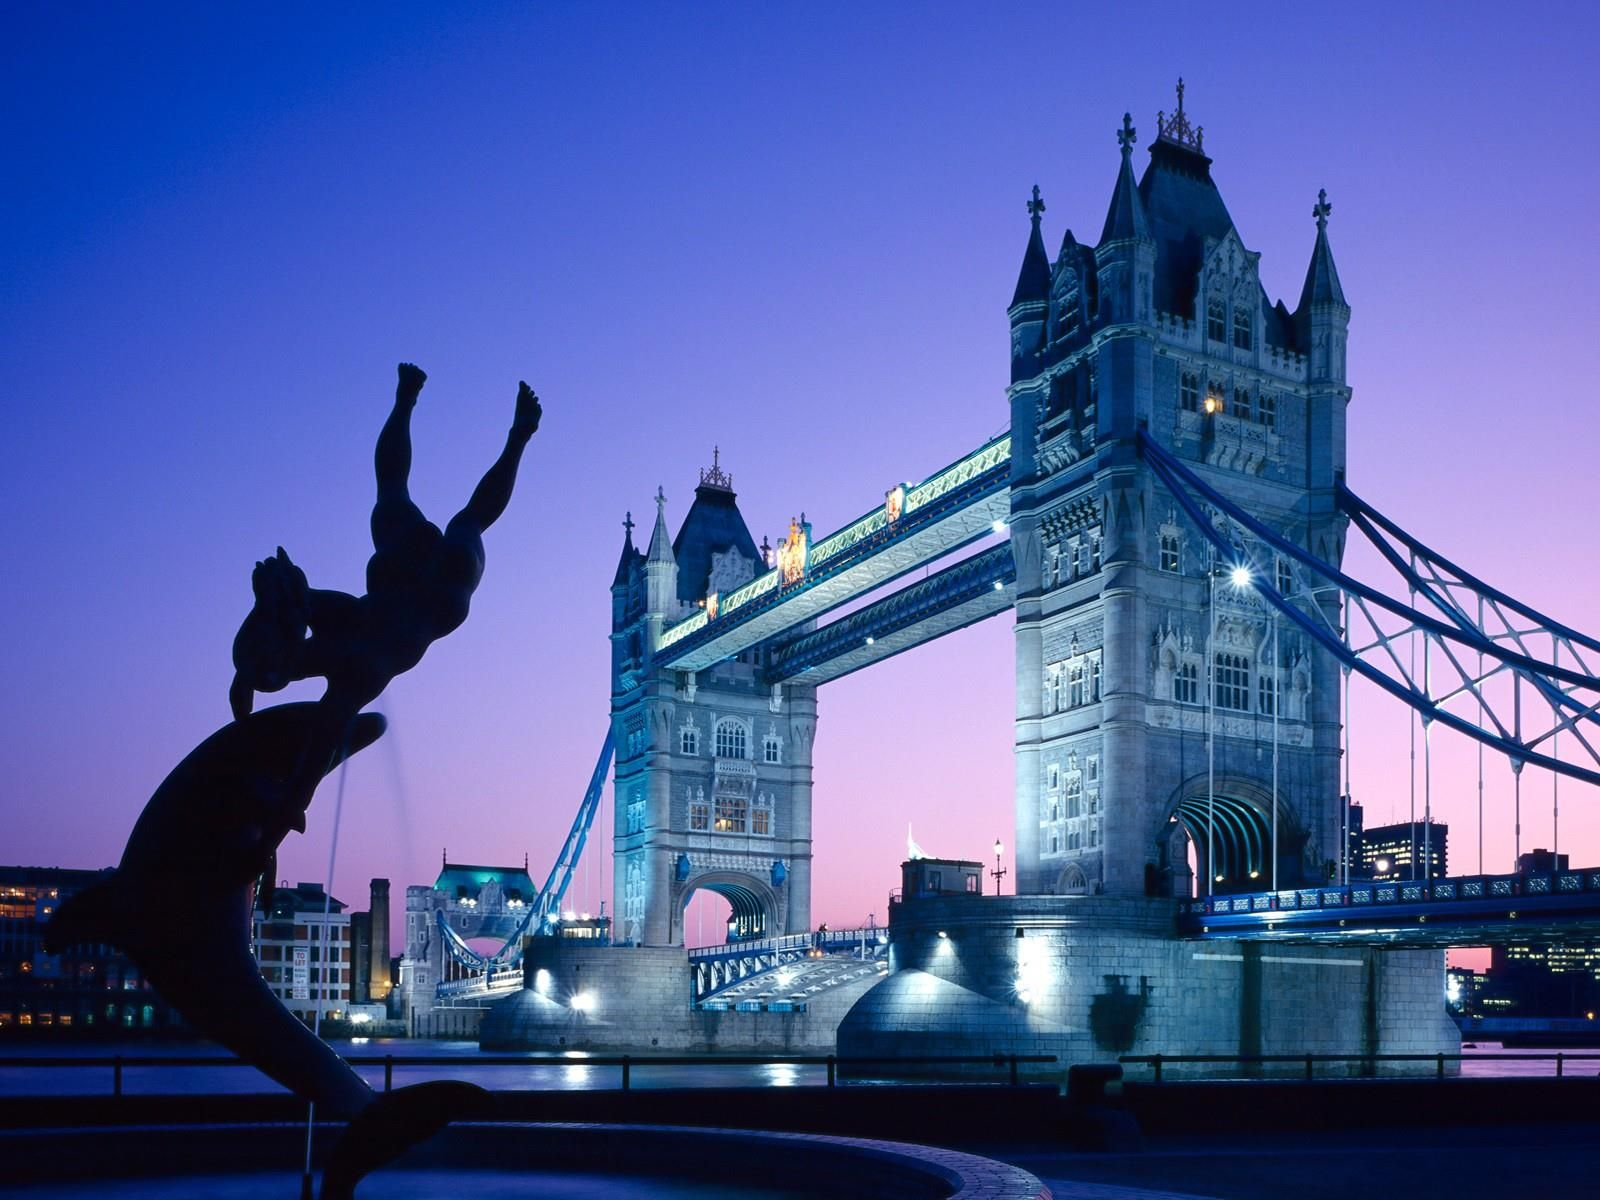 Pin By Unesourisetmoi On Voyager Dans Le Monde Tower Bridge London Tower Bridge London Wallpaper Tower bridge night reflections london hd